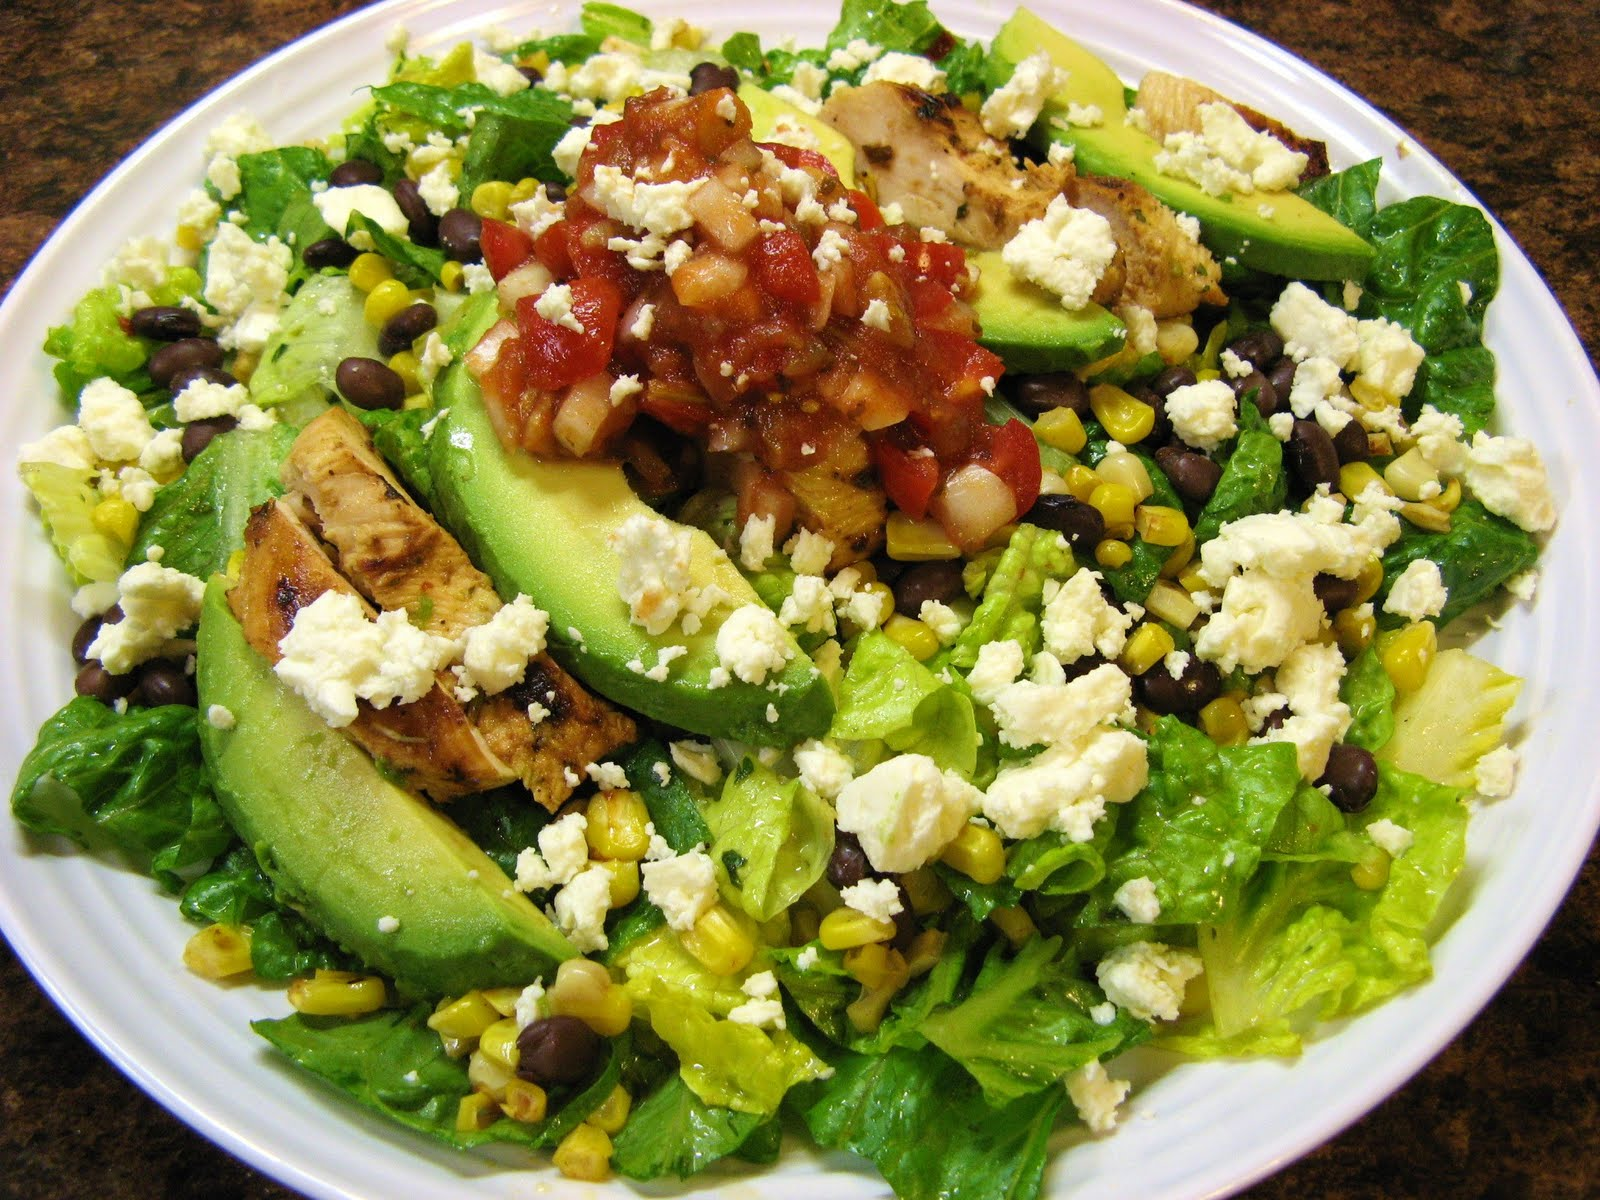 ... -Fed Newlyweds: Grilled Chicken Salad with Chipotle Lime Vinaigrette